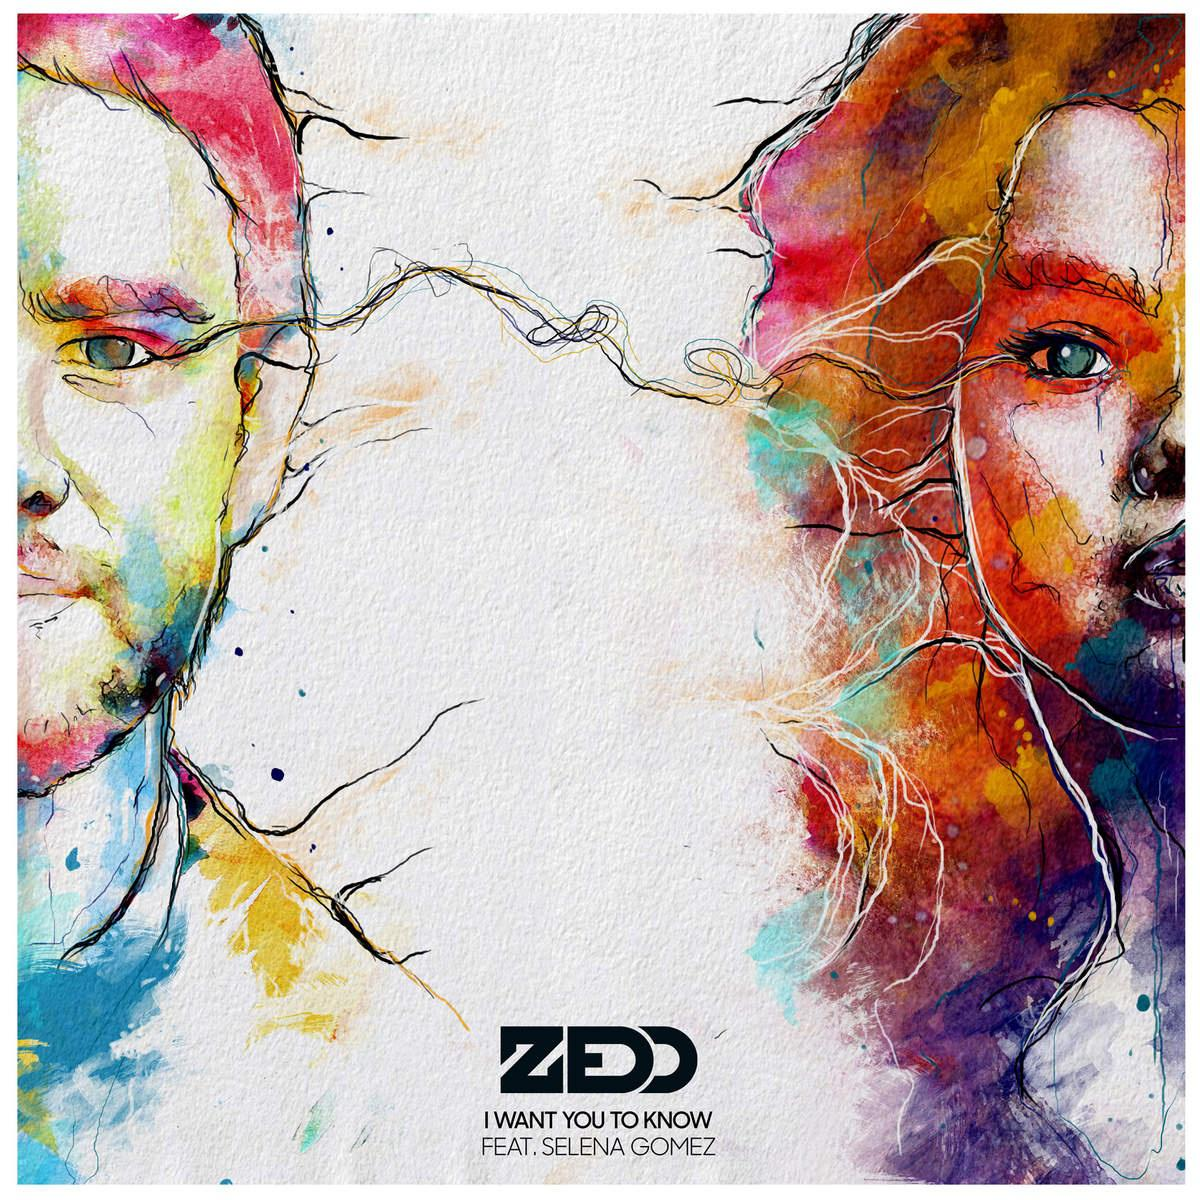 I Want You to Know (feat. Selena Gomez)